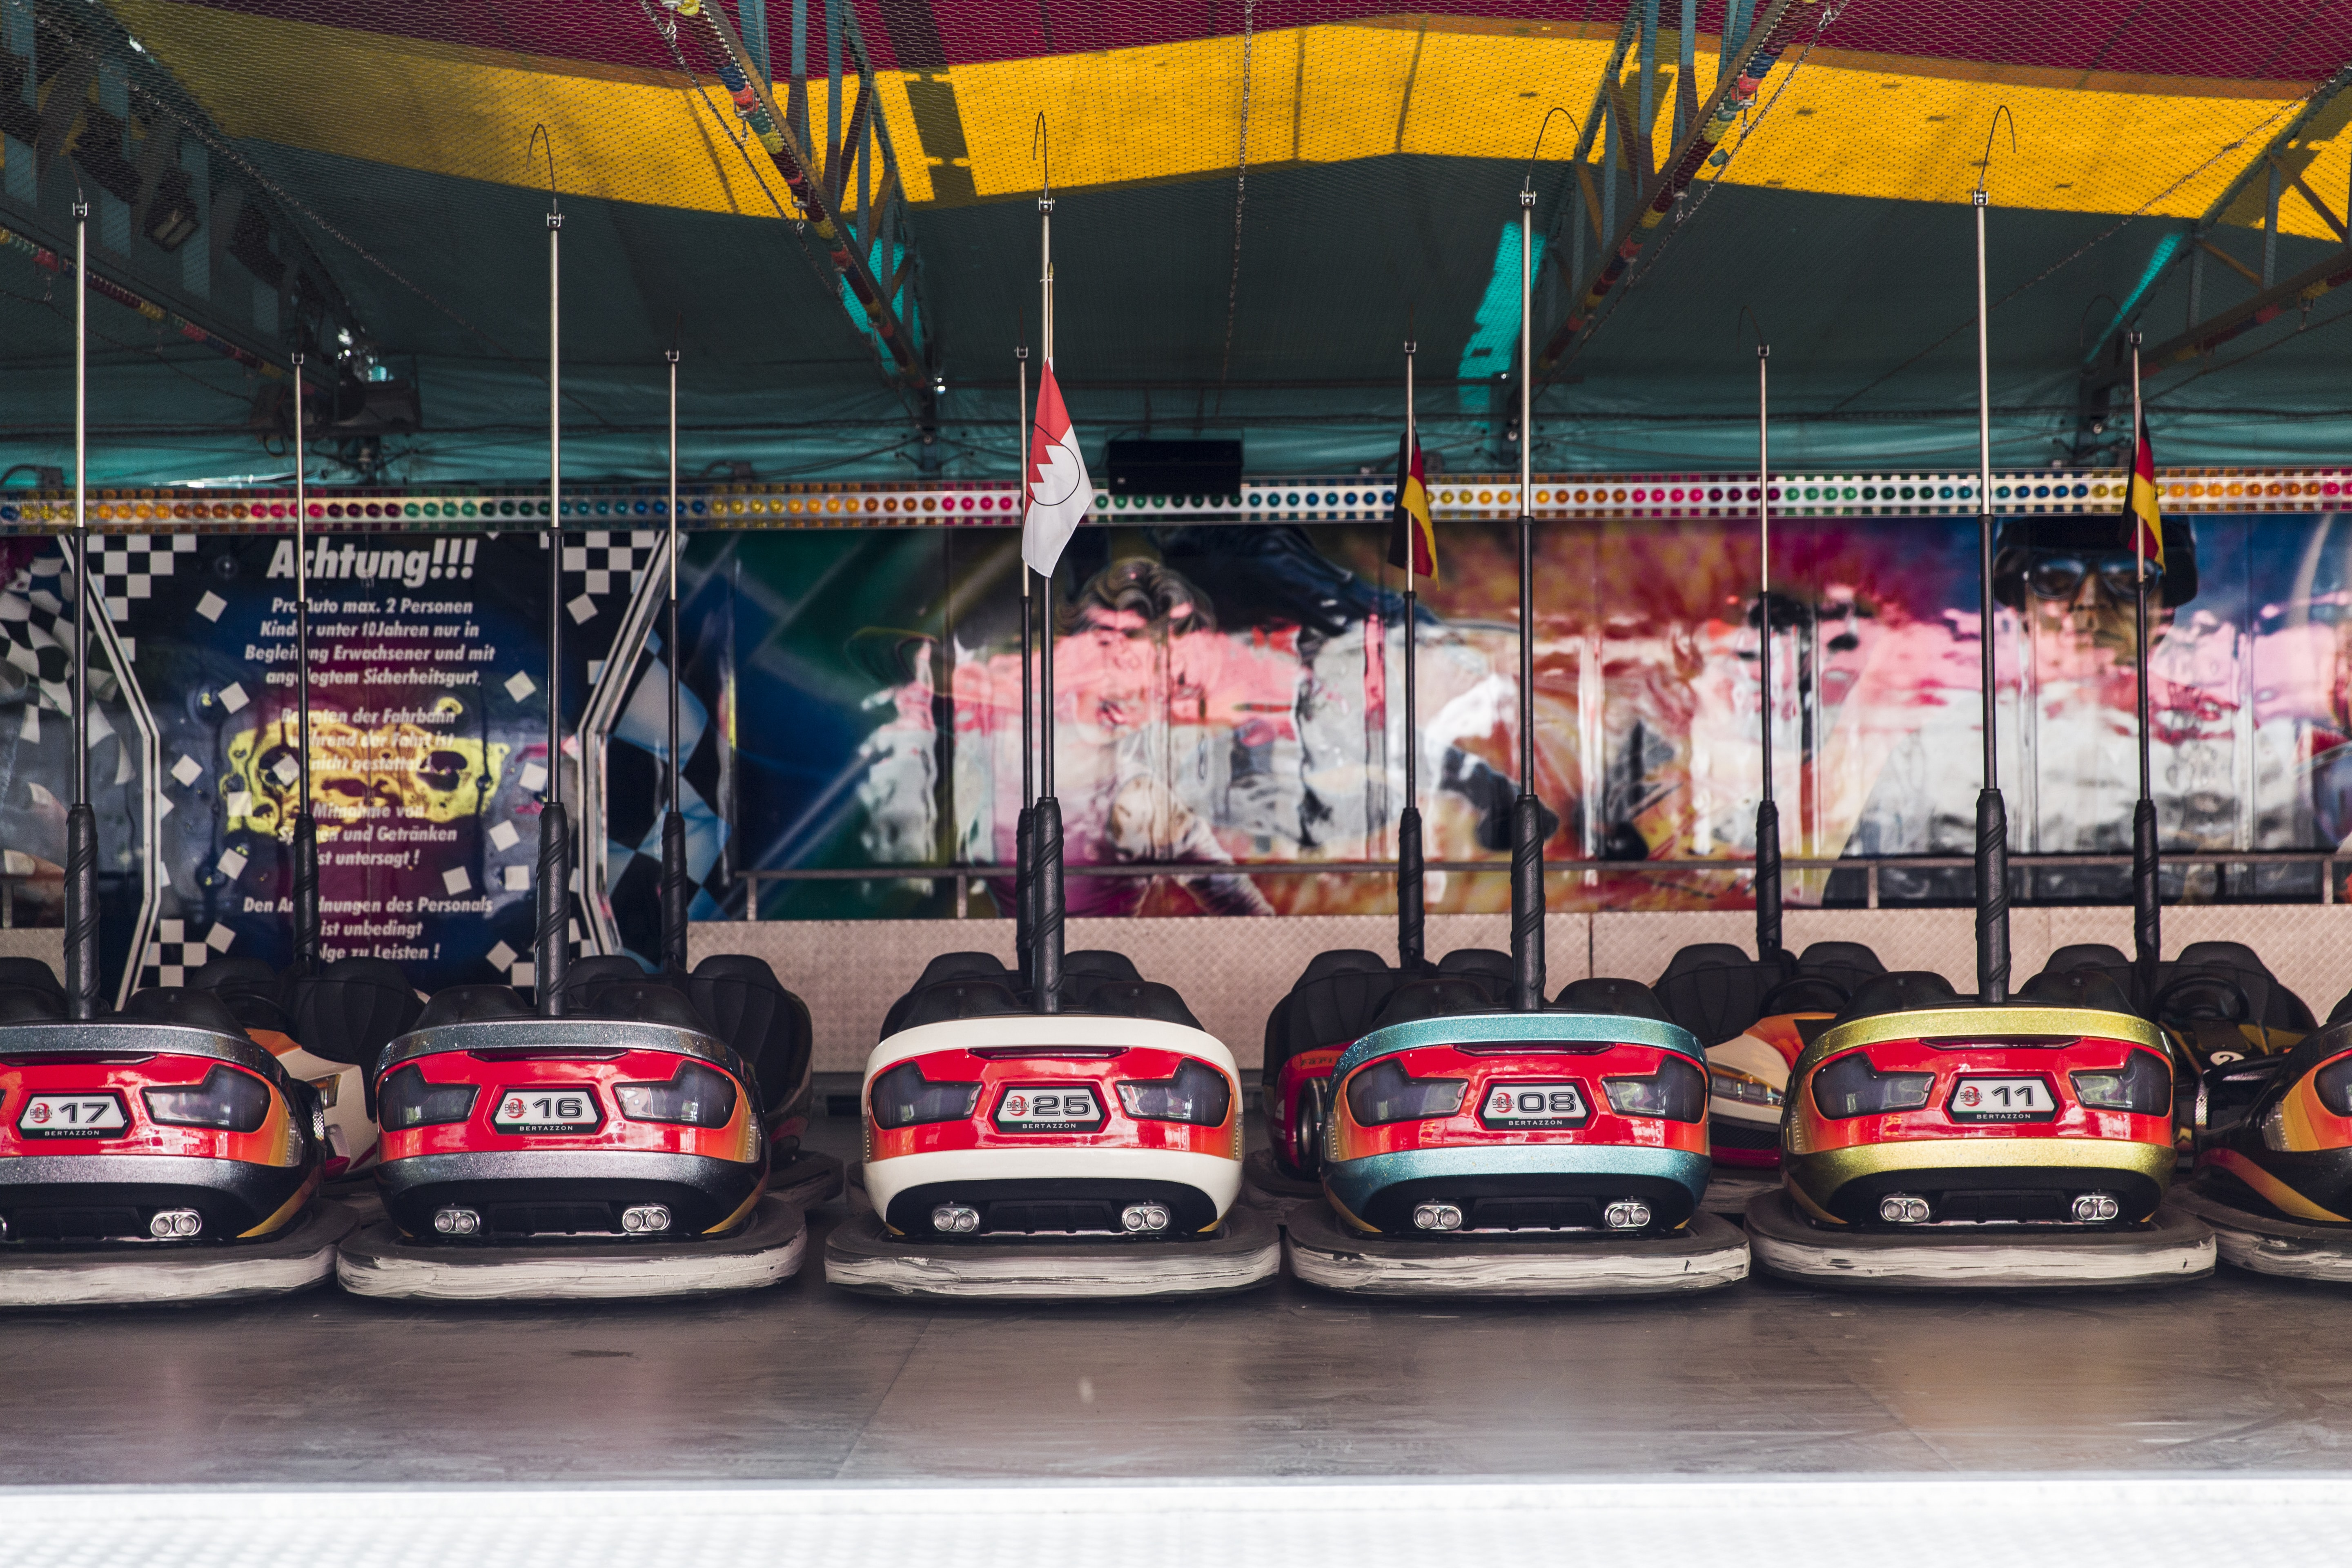 parked bumper cars